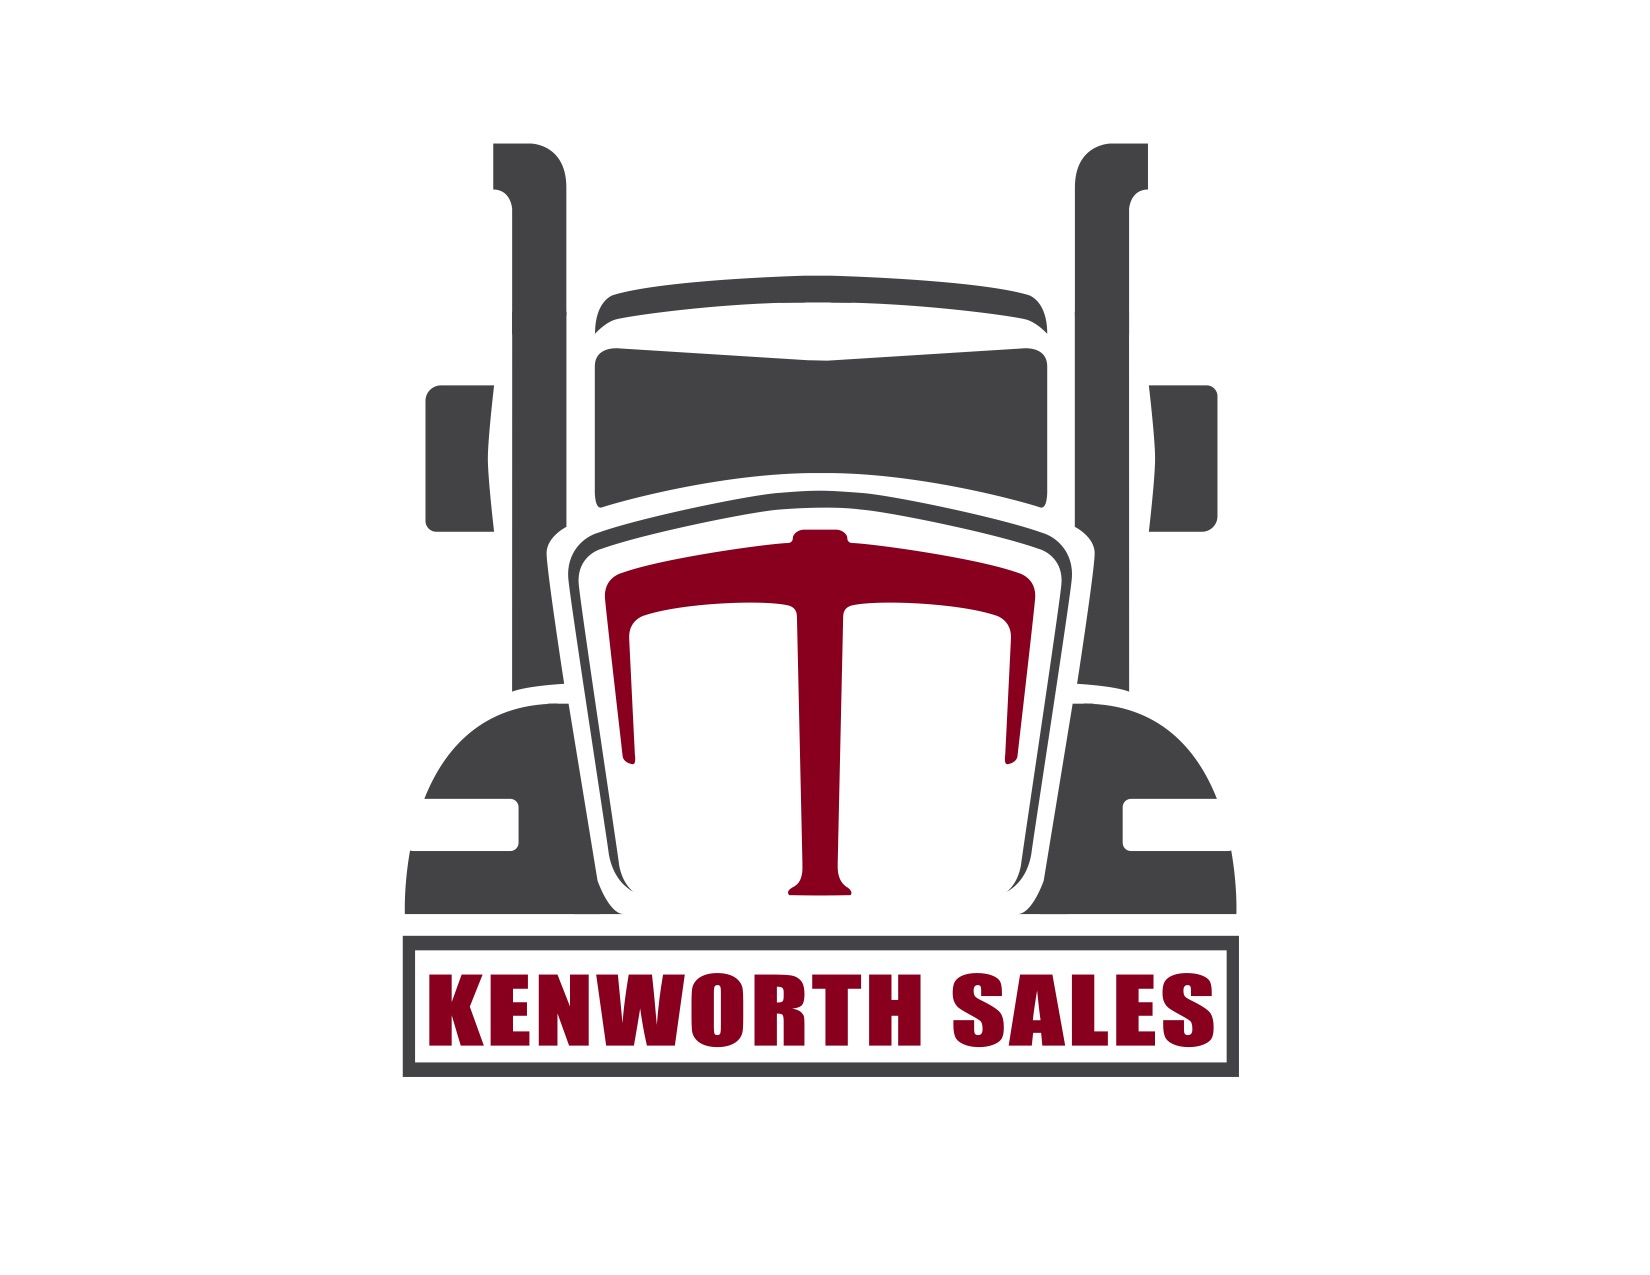 Kenworth Sales